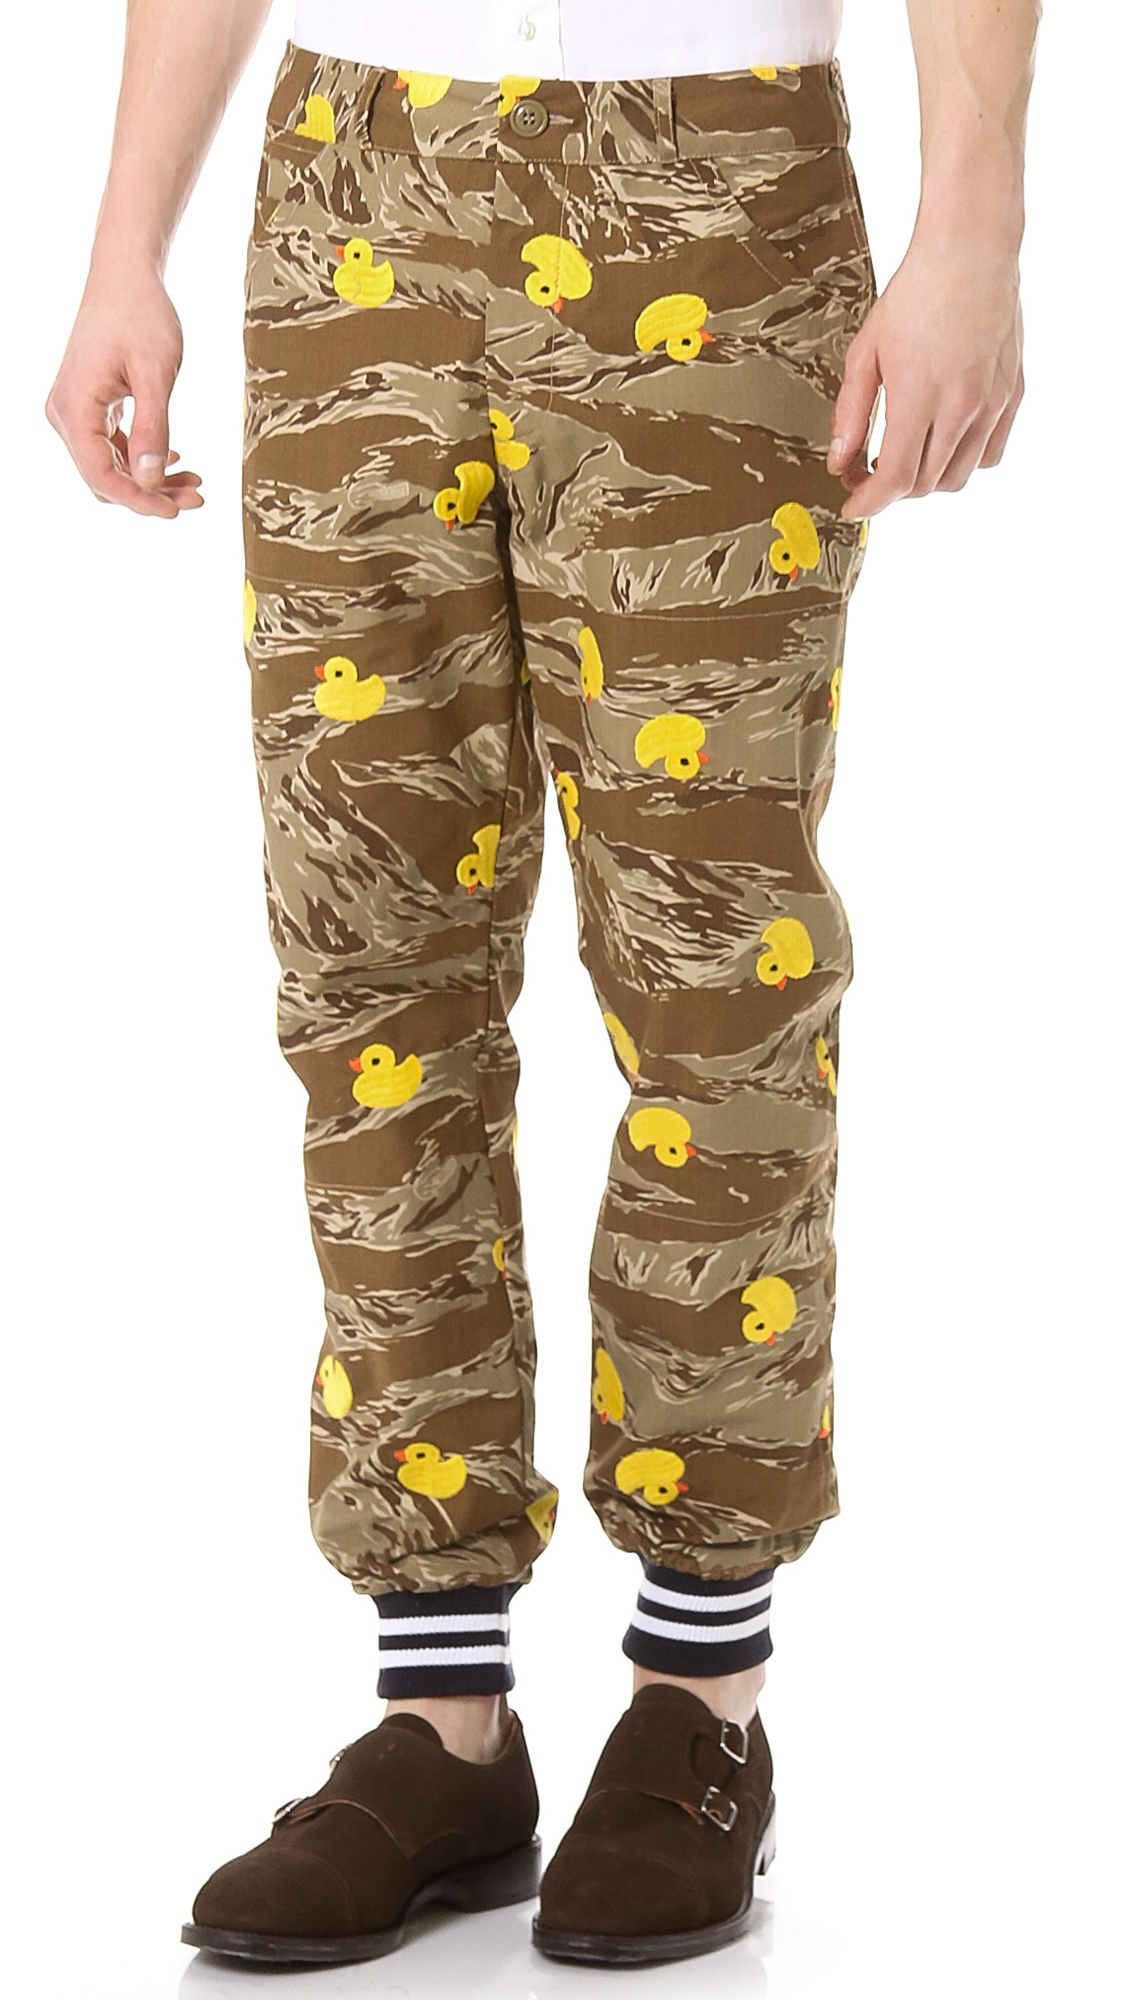 Lyst - Mark Mcnairy New Amsterdam Rubber Duck Higgins Pants for Men